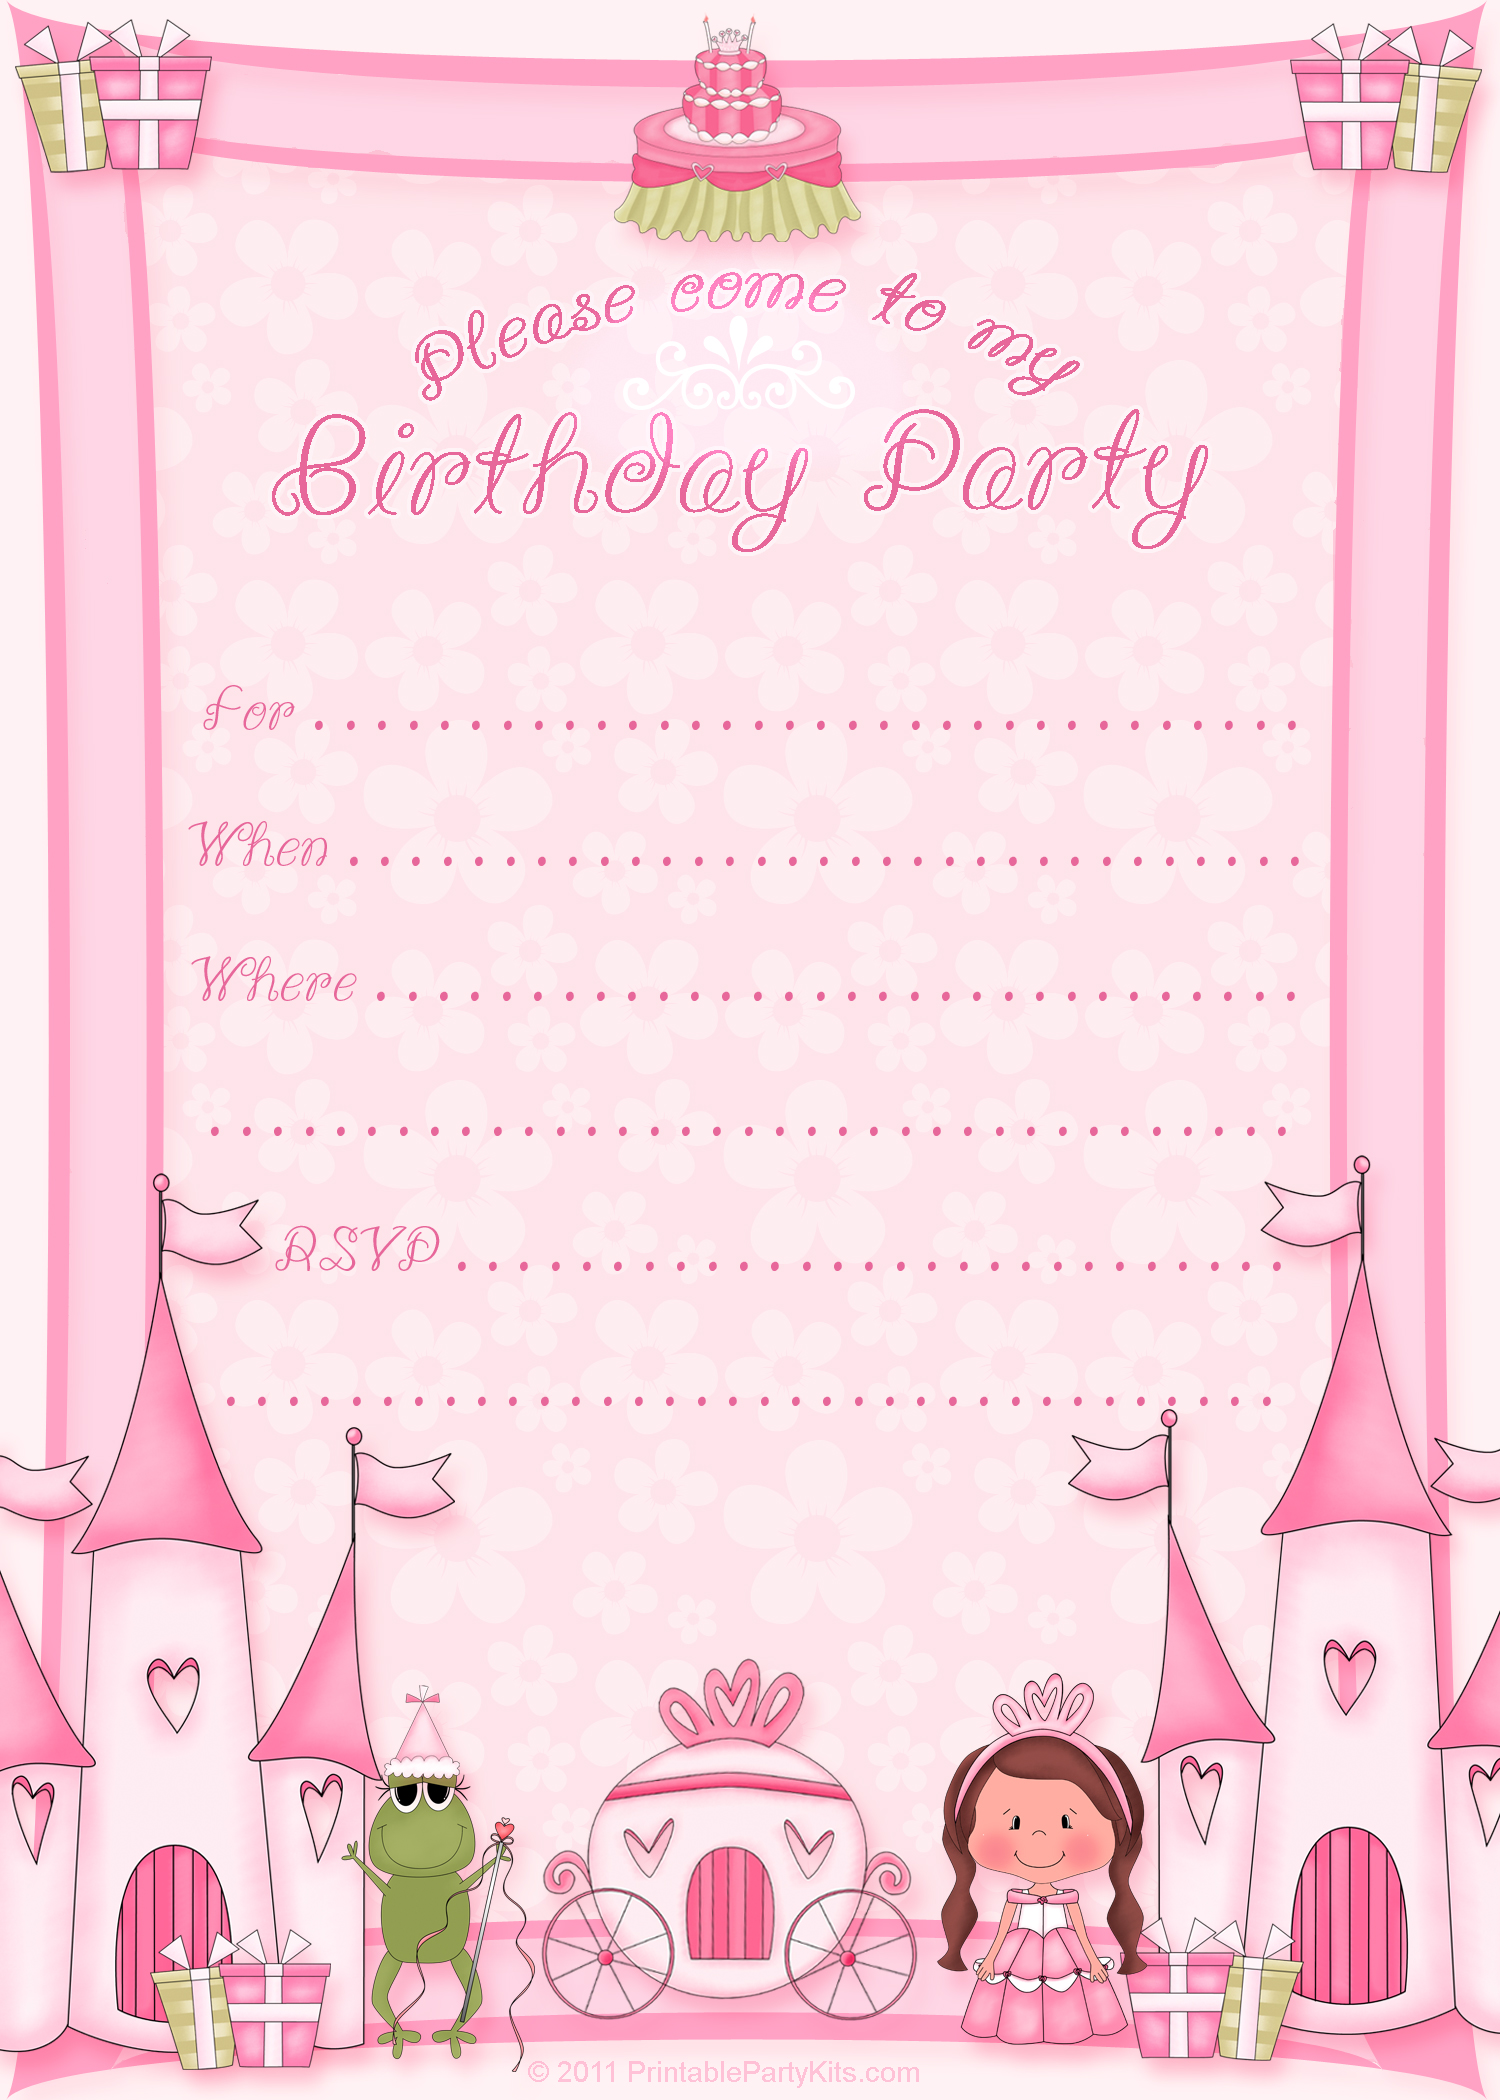 free printable birthday cards for girls ; kids-birthday-card-template-luxury-23-creative-birthday-party-invitation-card-templates-of-kids-birthday-card-template